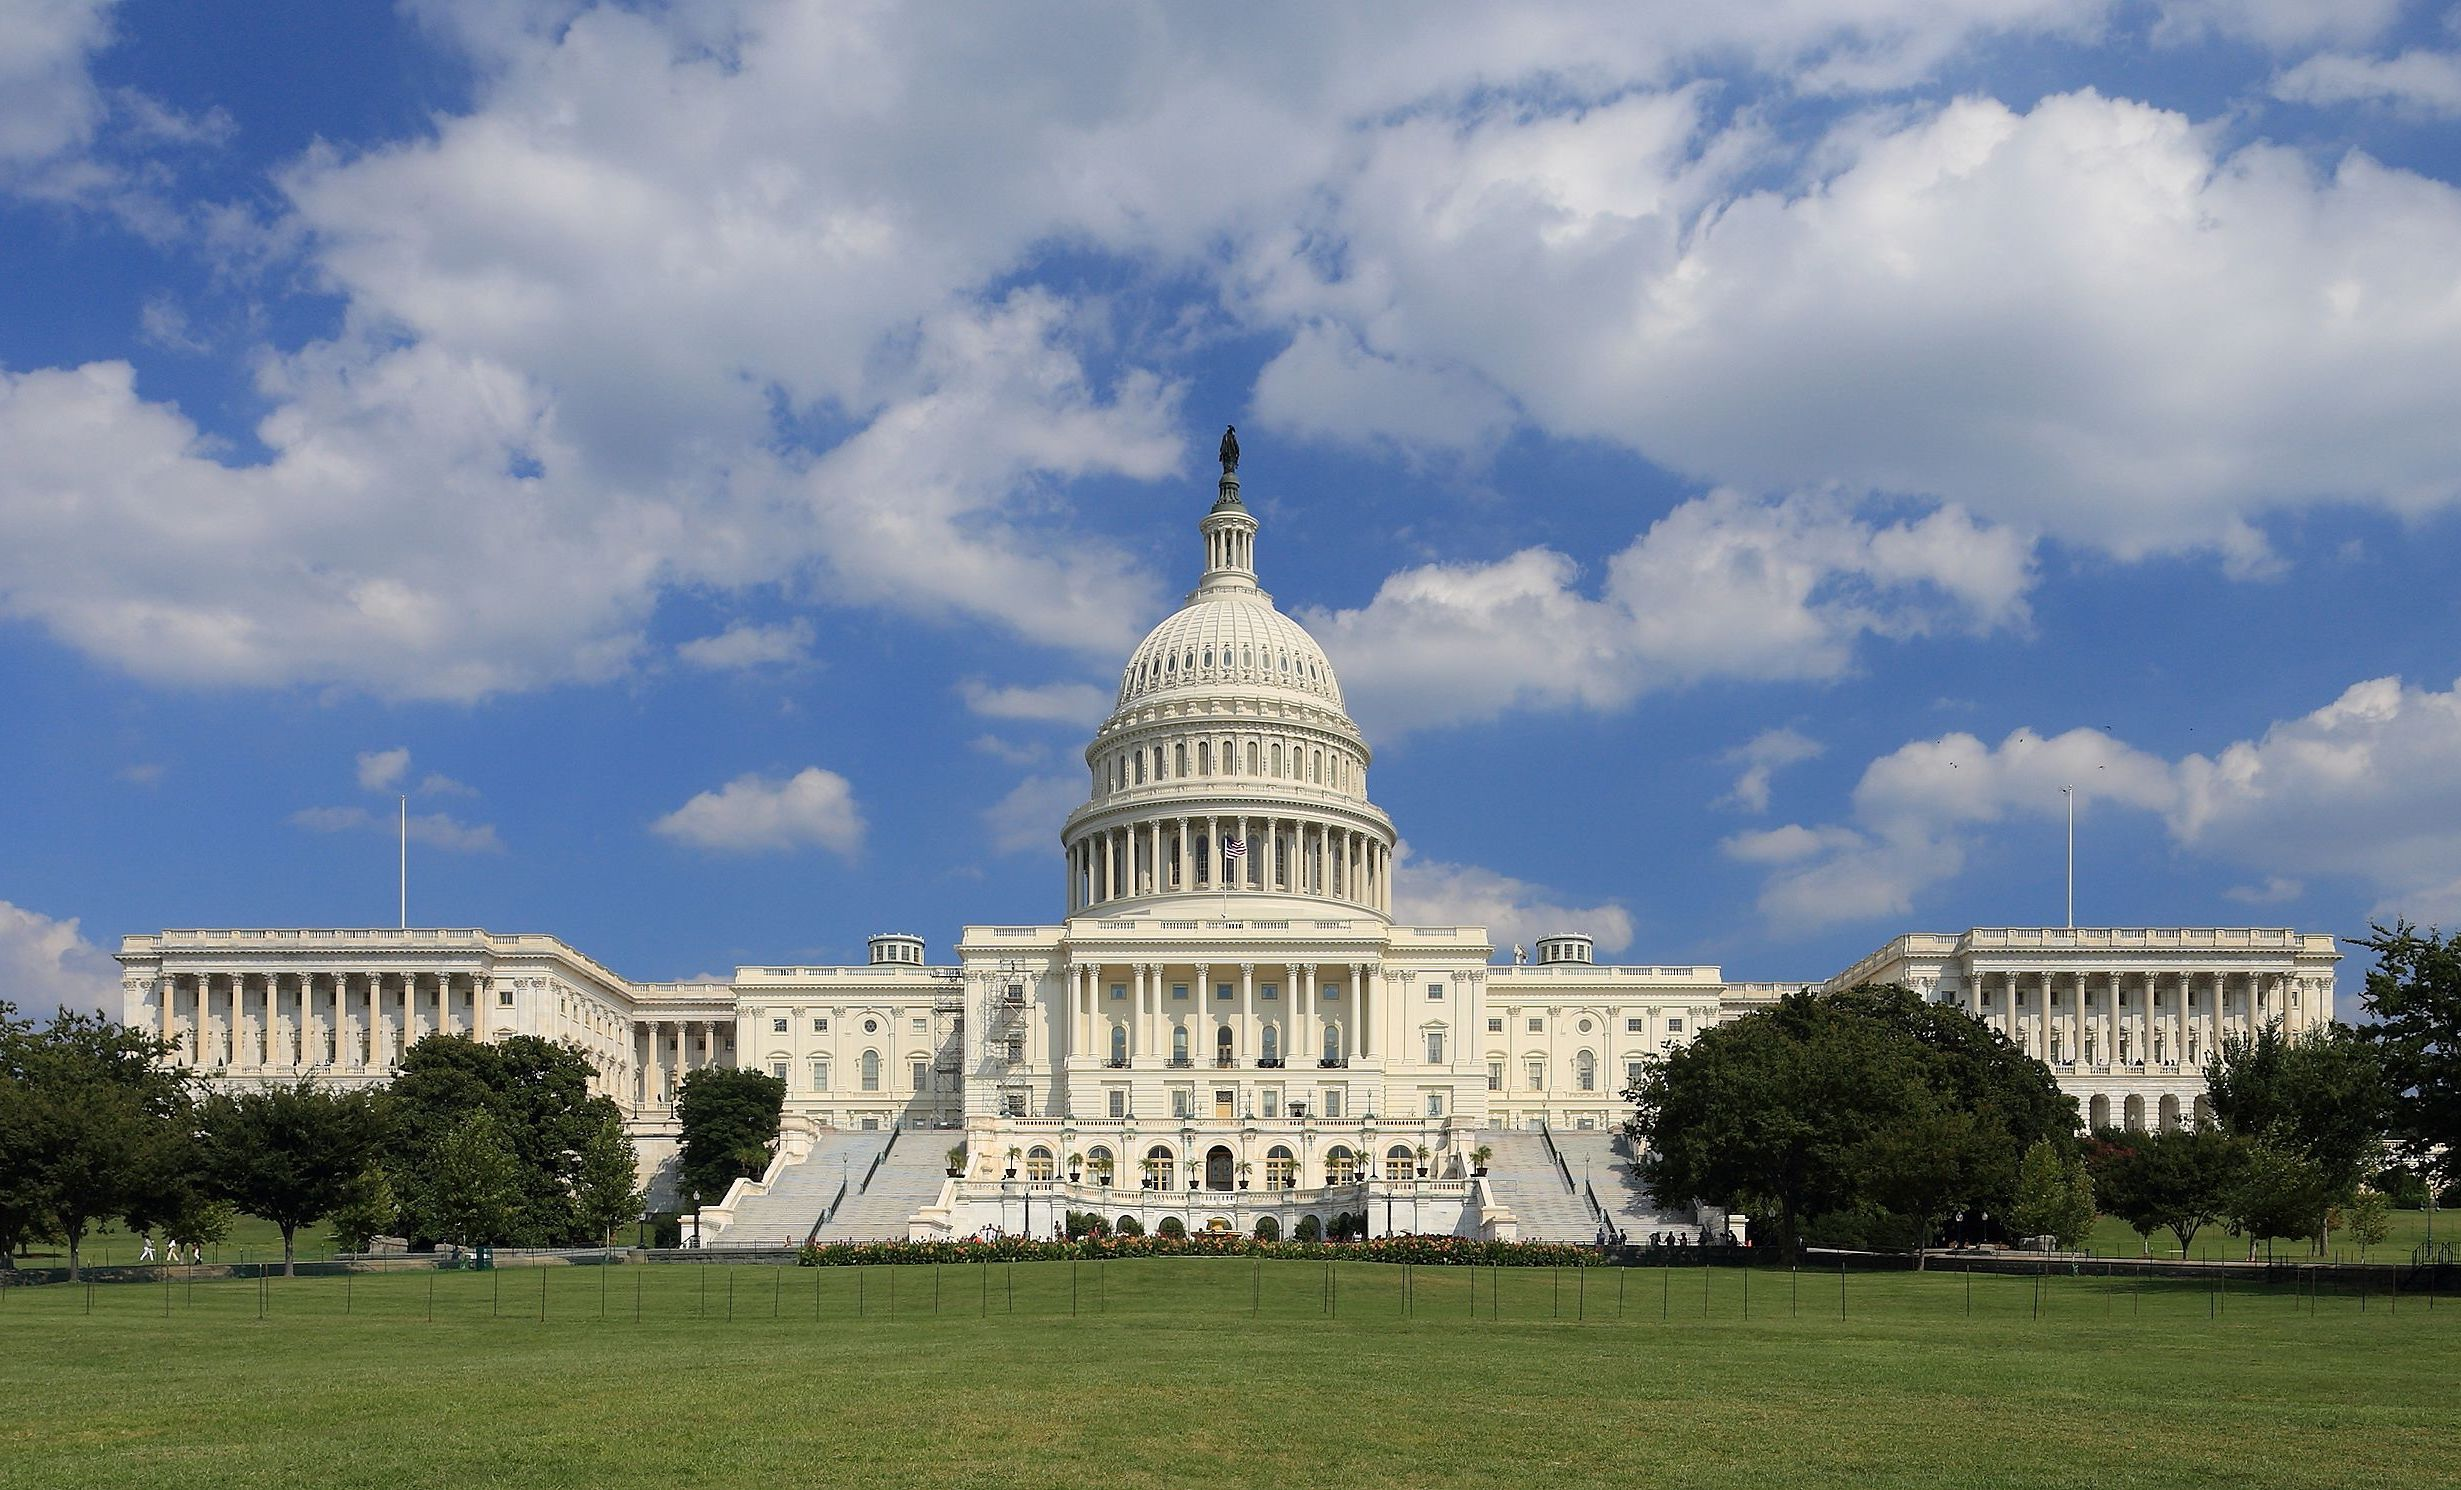 Exterior photo of the US Capitol Done